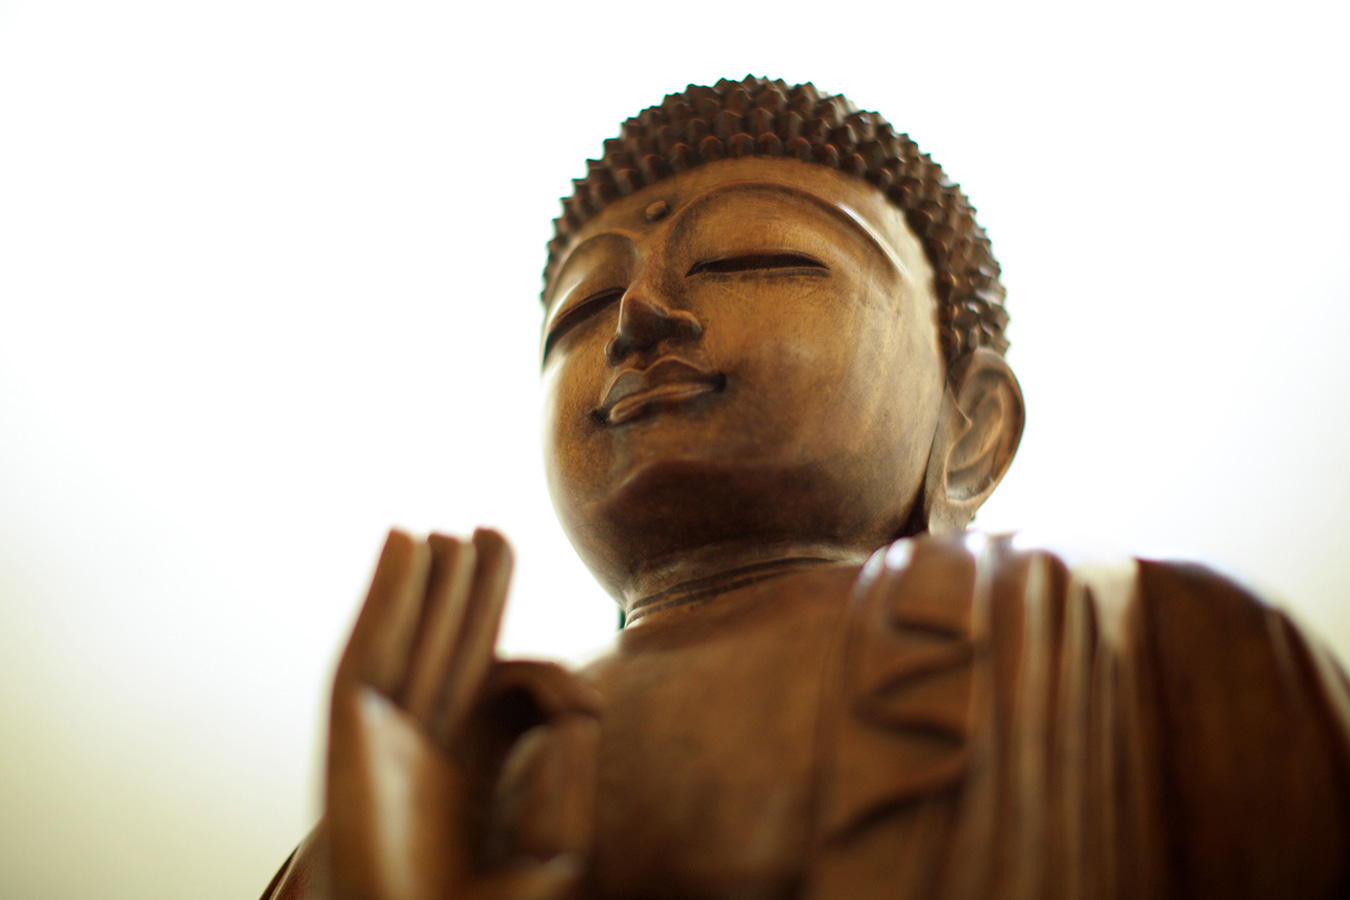 Buddha Sculpture - Yoga Retreat - Mexico